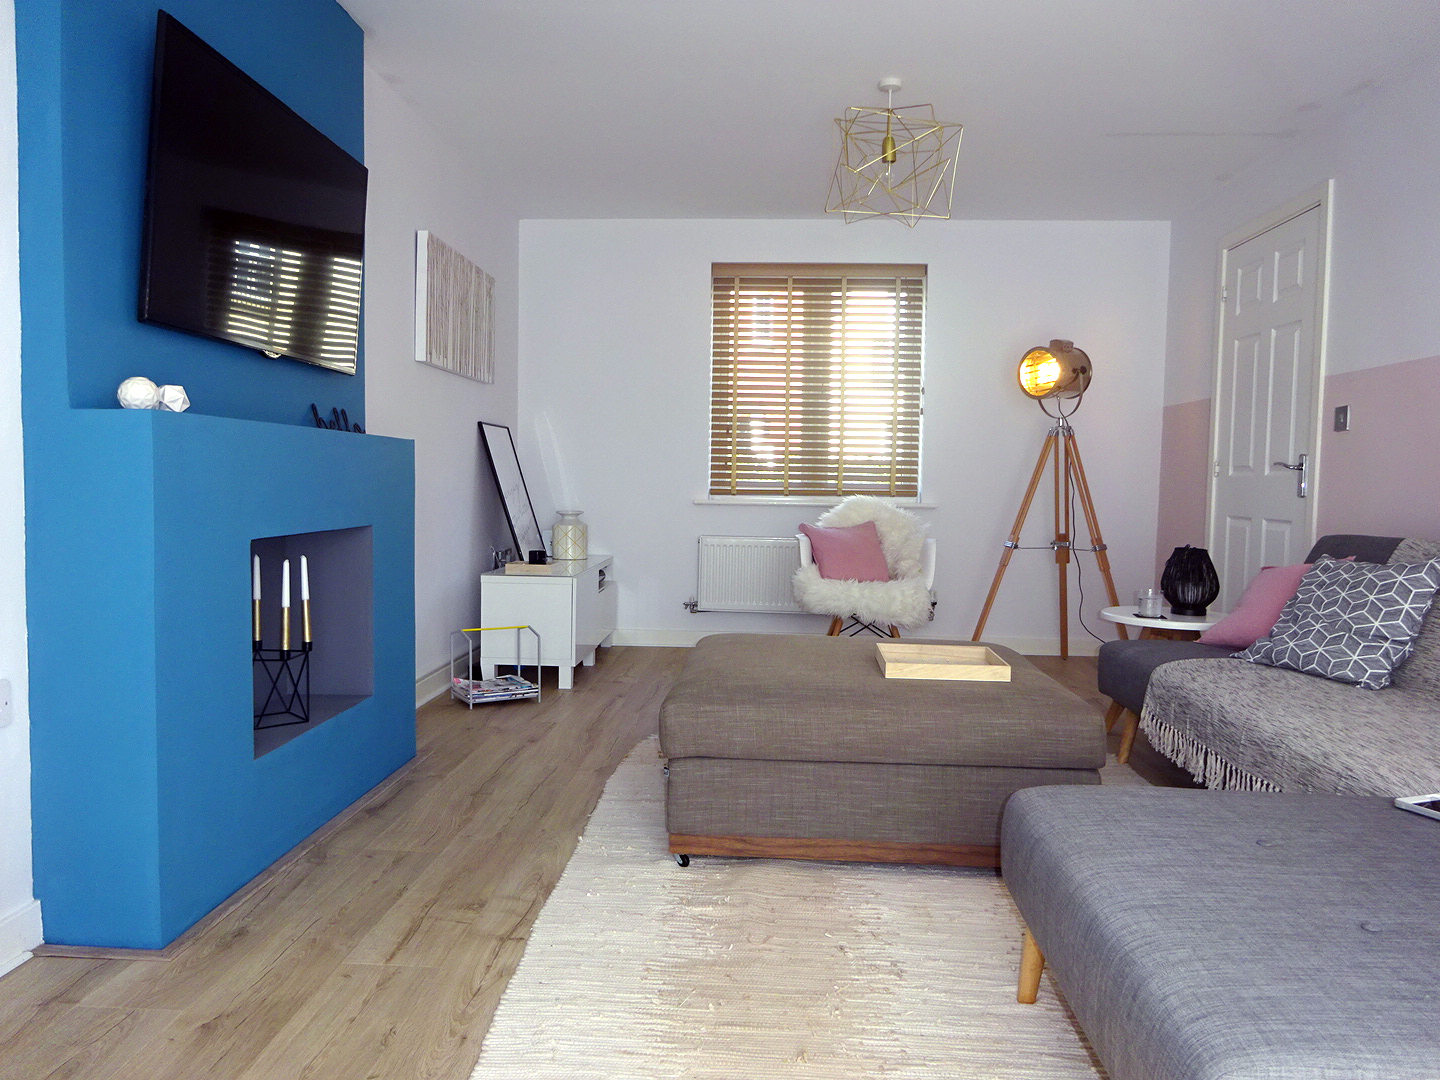 We chose blinds instead of curtains and white as a background to make the room look wider and brighter.